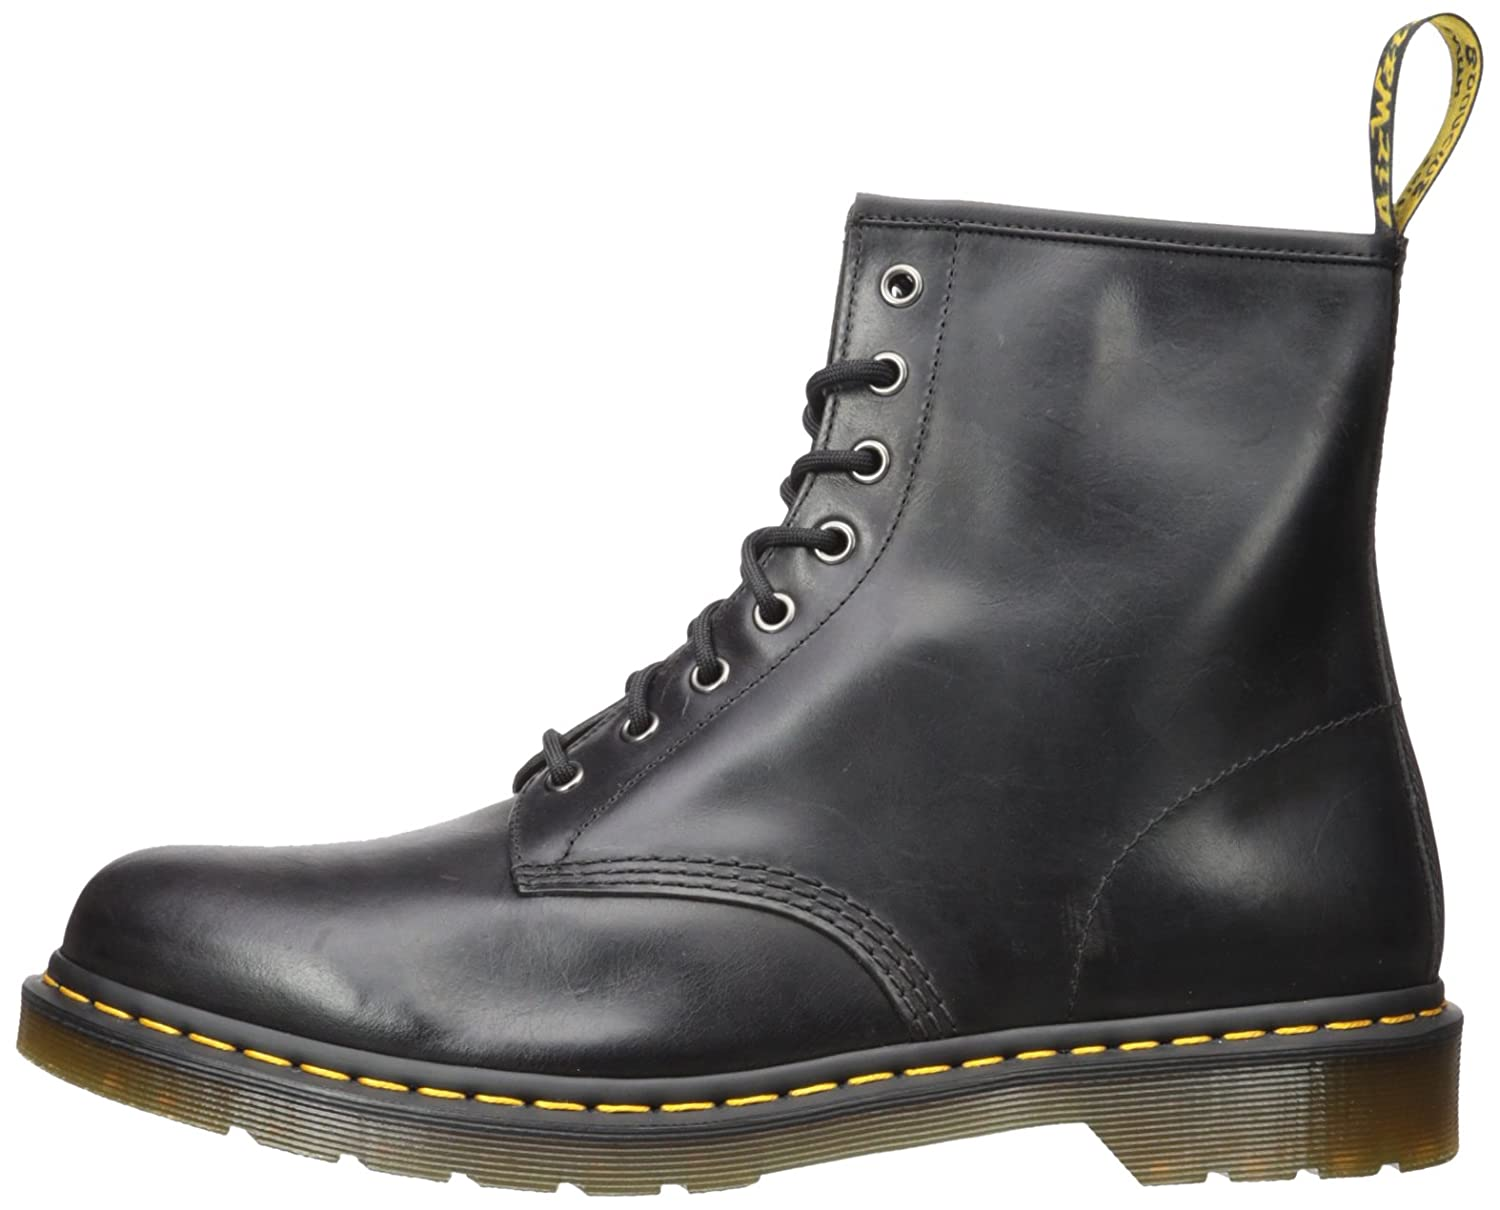 Dr. Martens Orleans Boots 1460 Boots Orleans (Charcoal) Gunmetal eb3f88